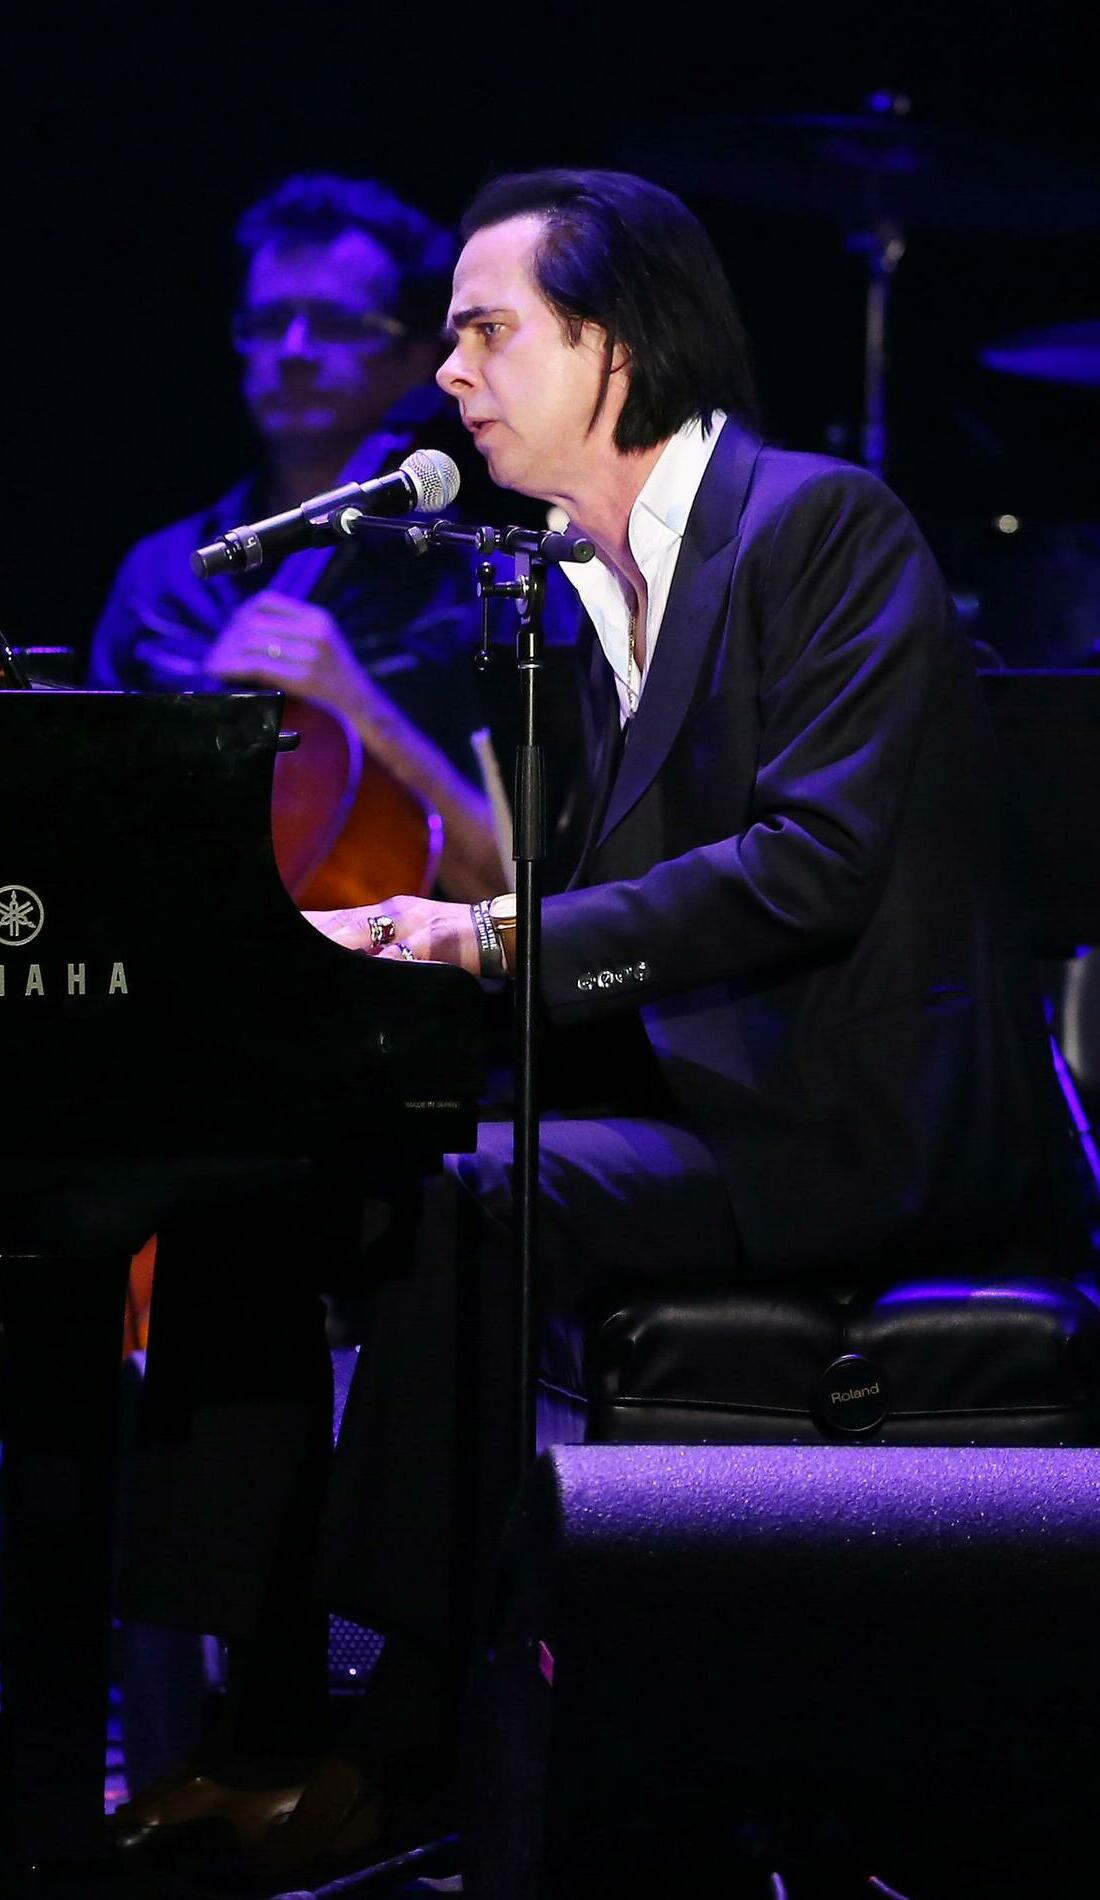 A Nick Cave live event